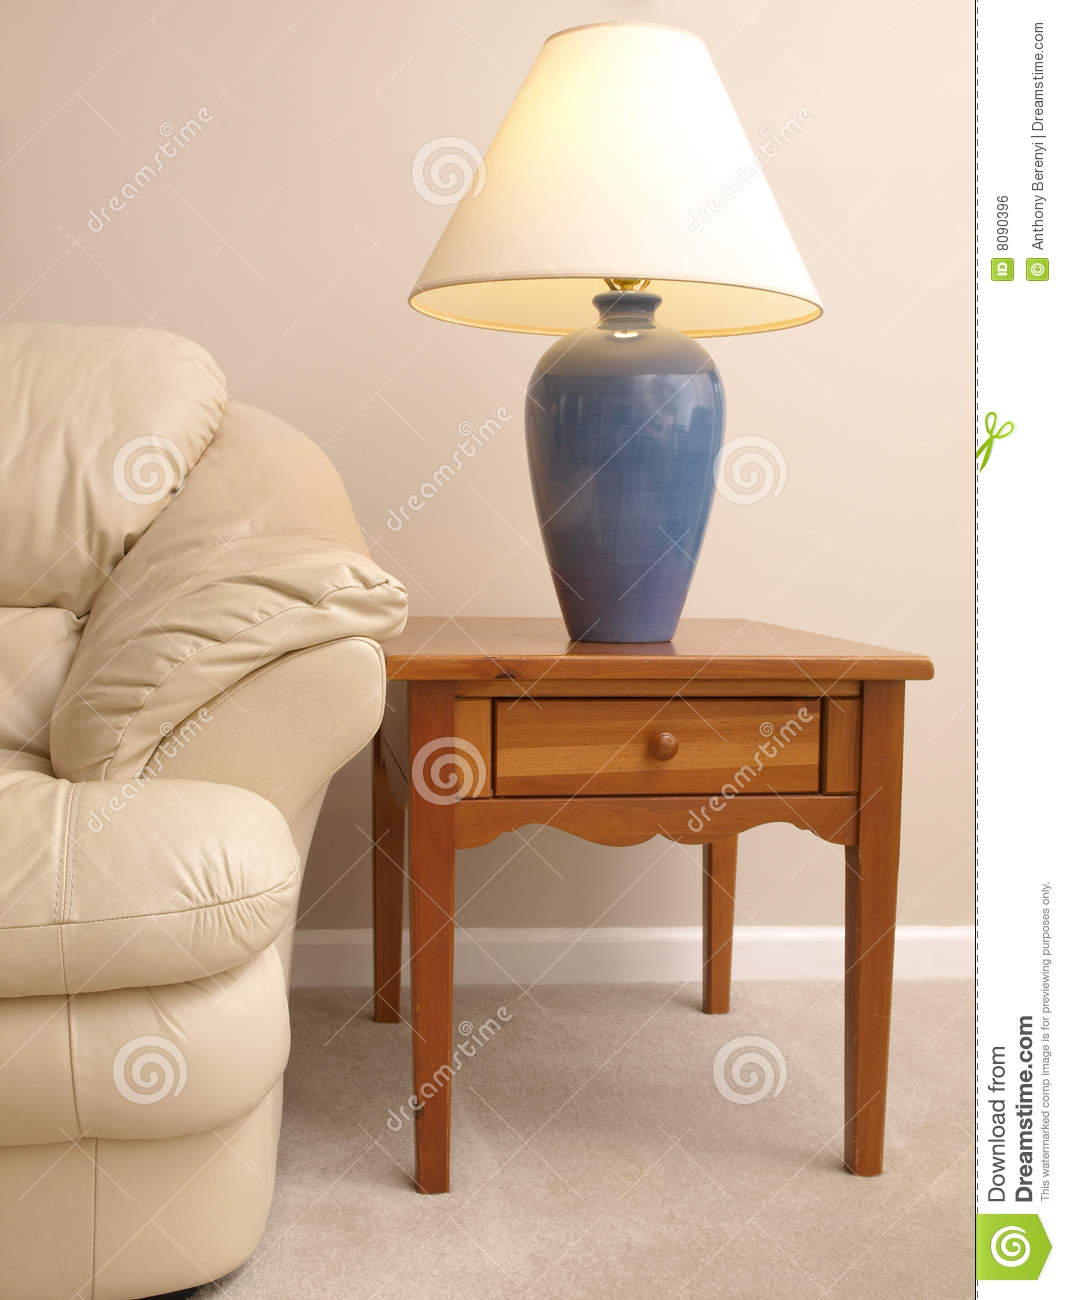 Lamp On Table: Leather Sofa with Lamp on full End Table,Lighting